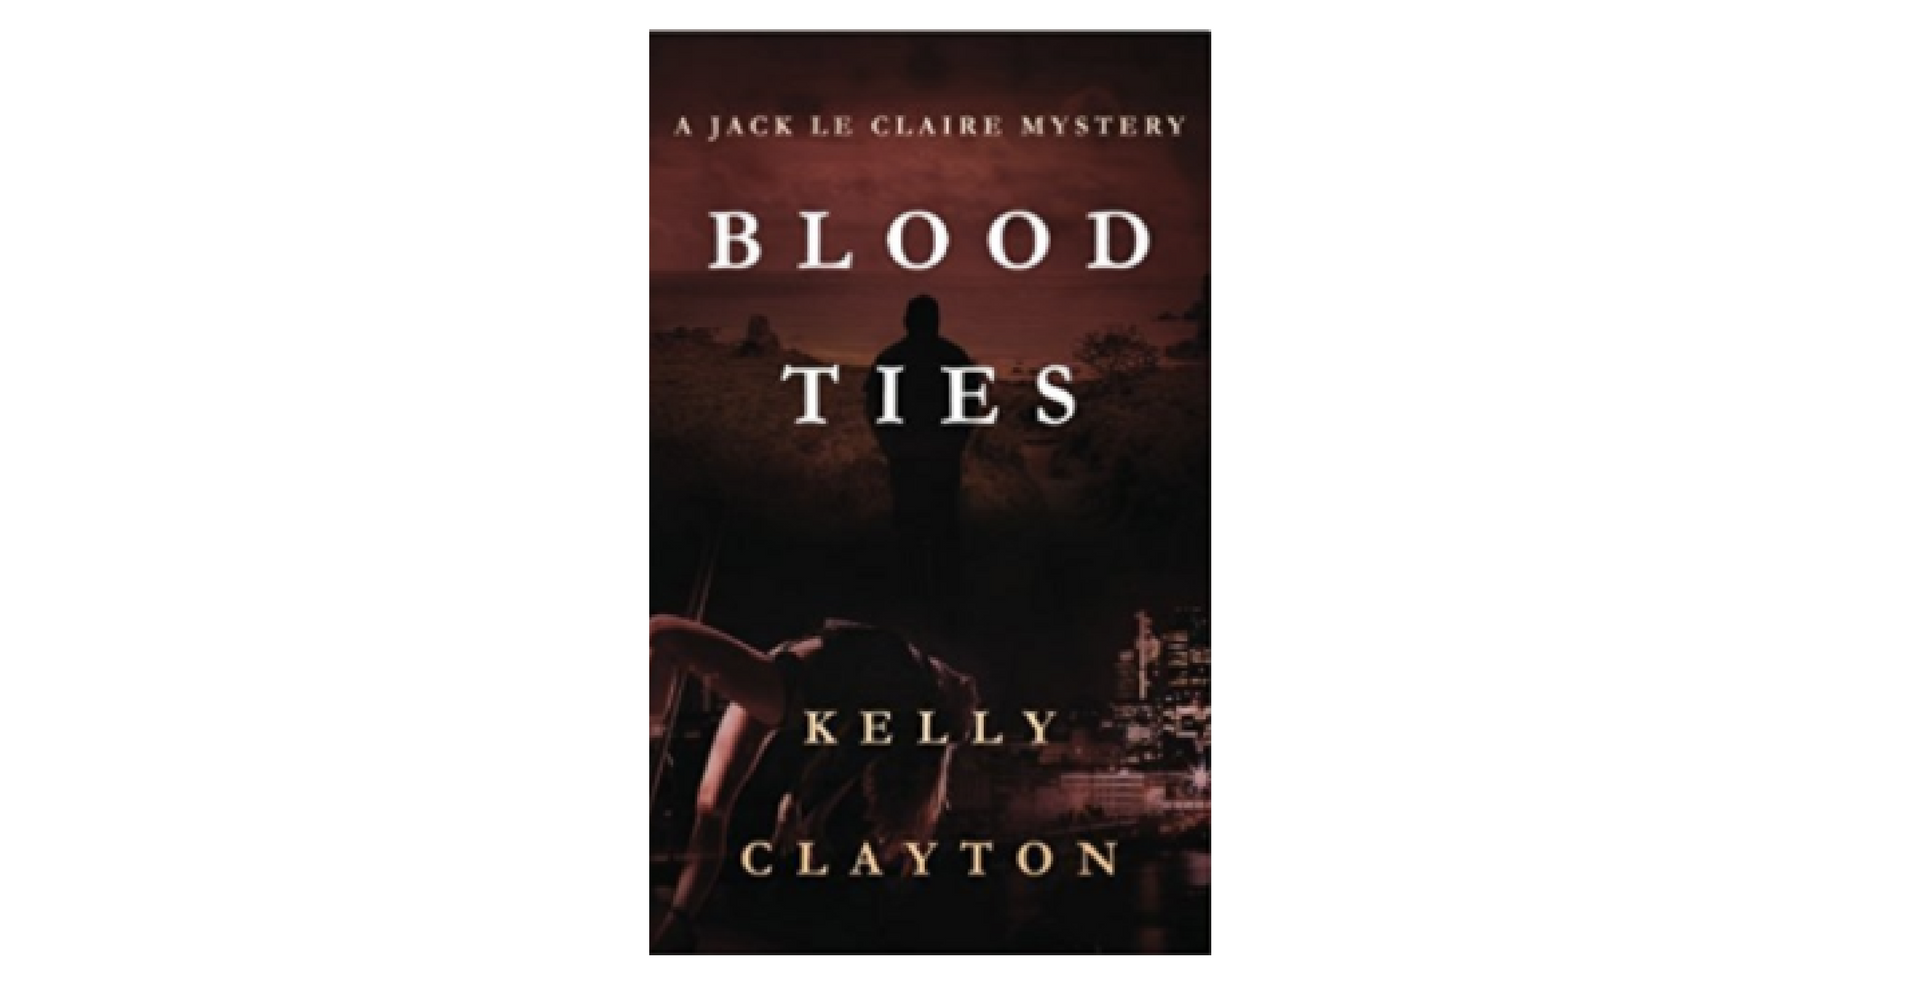 Blood Ties crime thriller